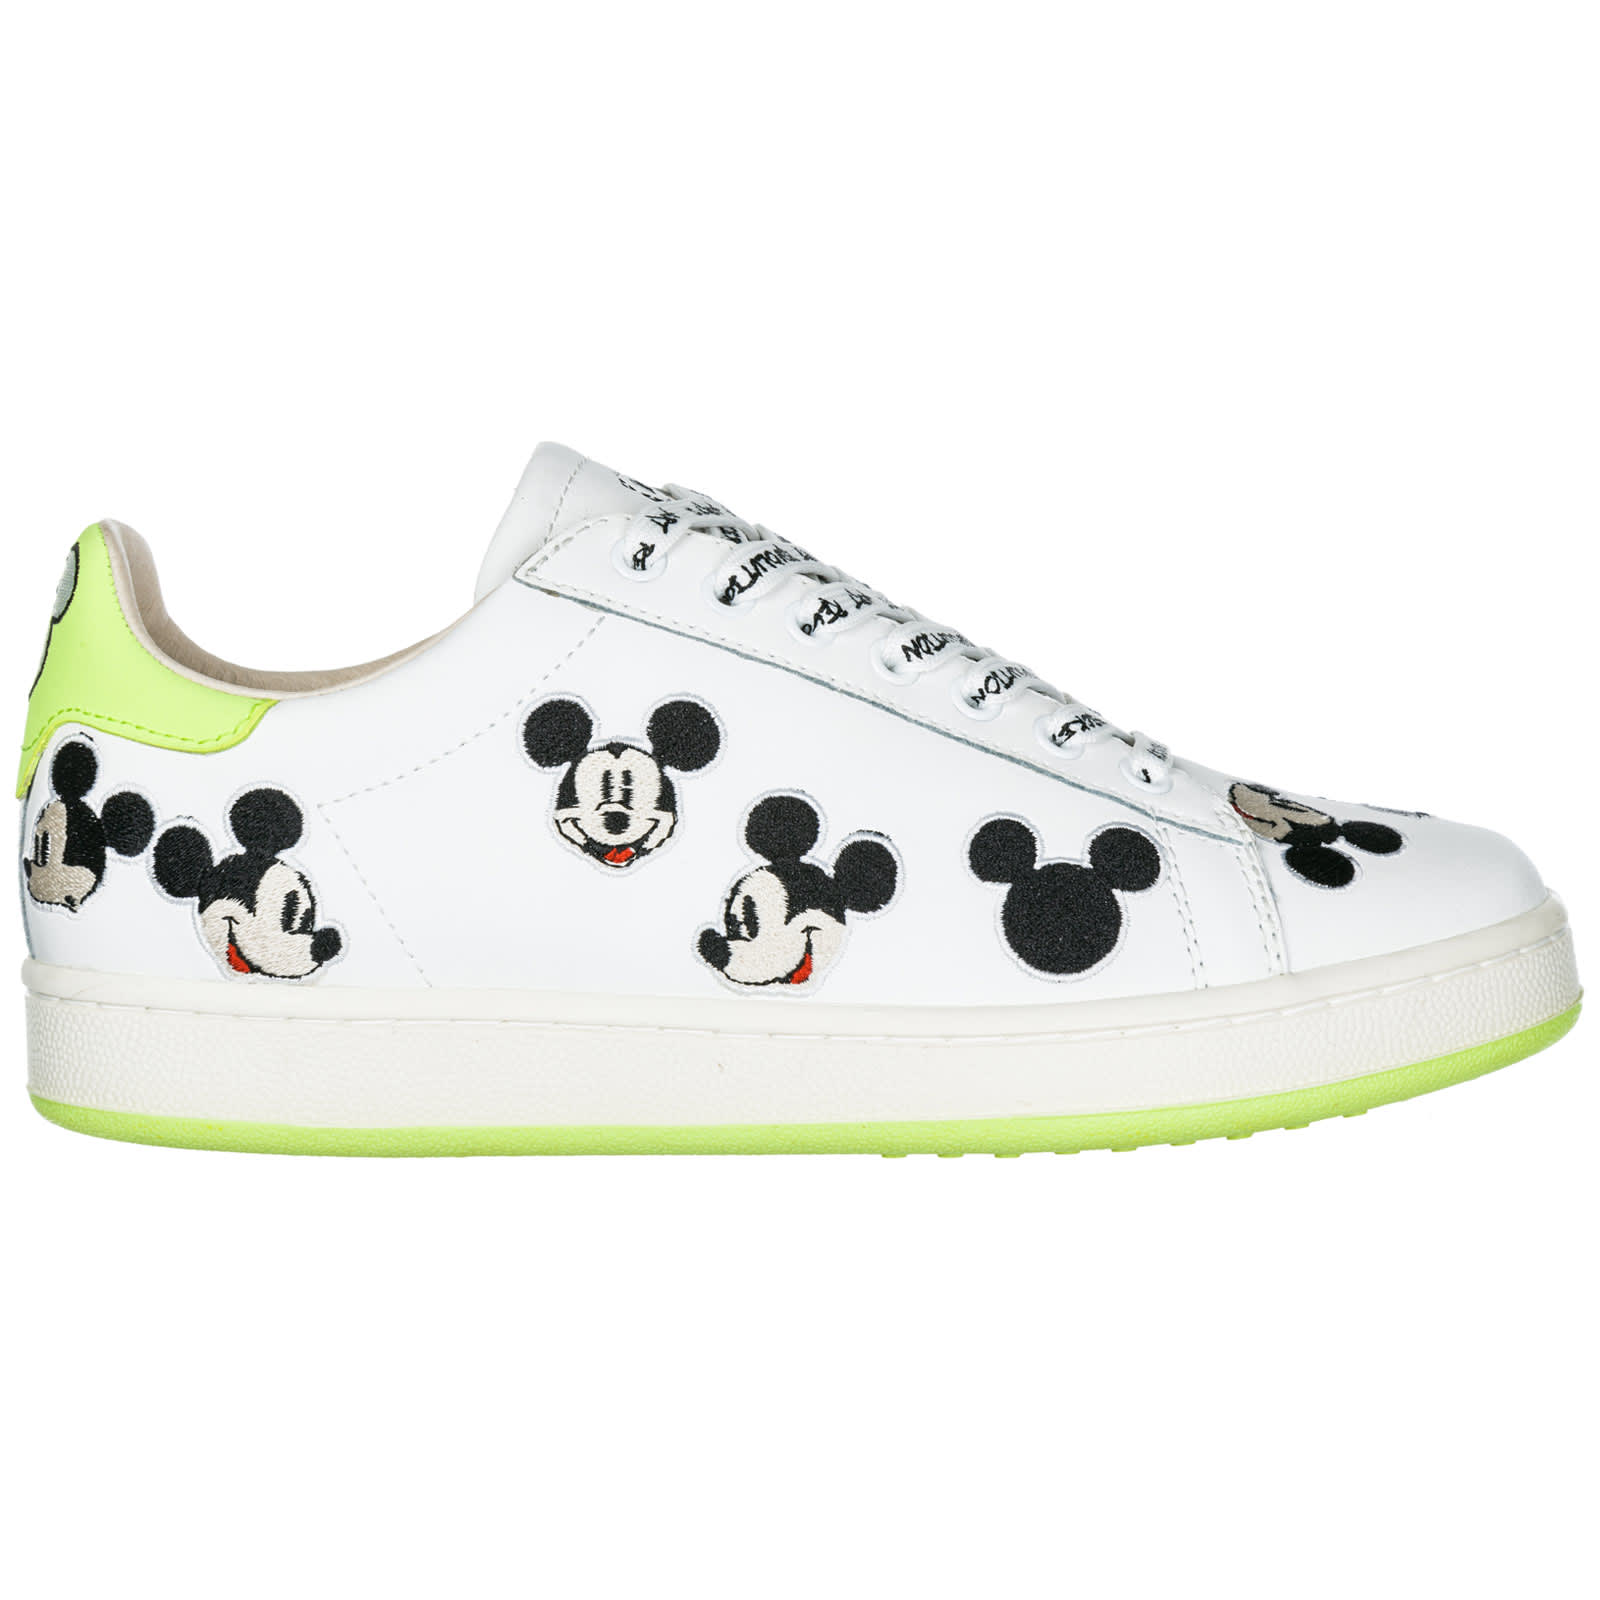 M Mickey Shoes Leather Of Sneakers o Mouse aMaster Disney Arts Trainers 7fm6vYgIby